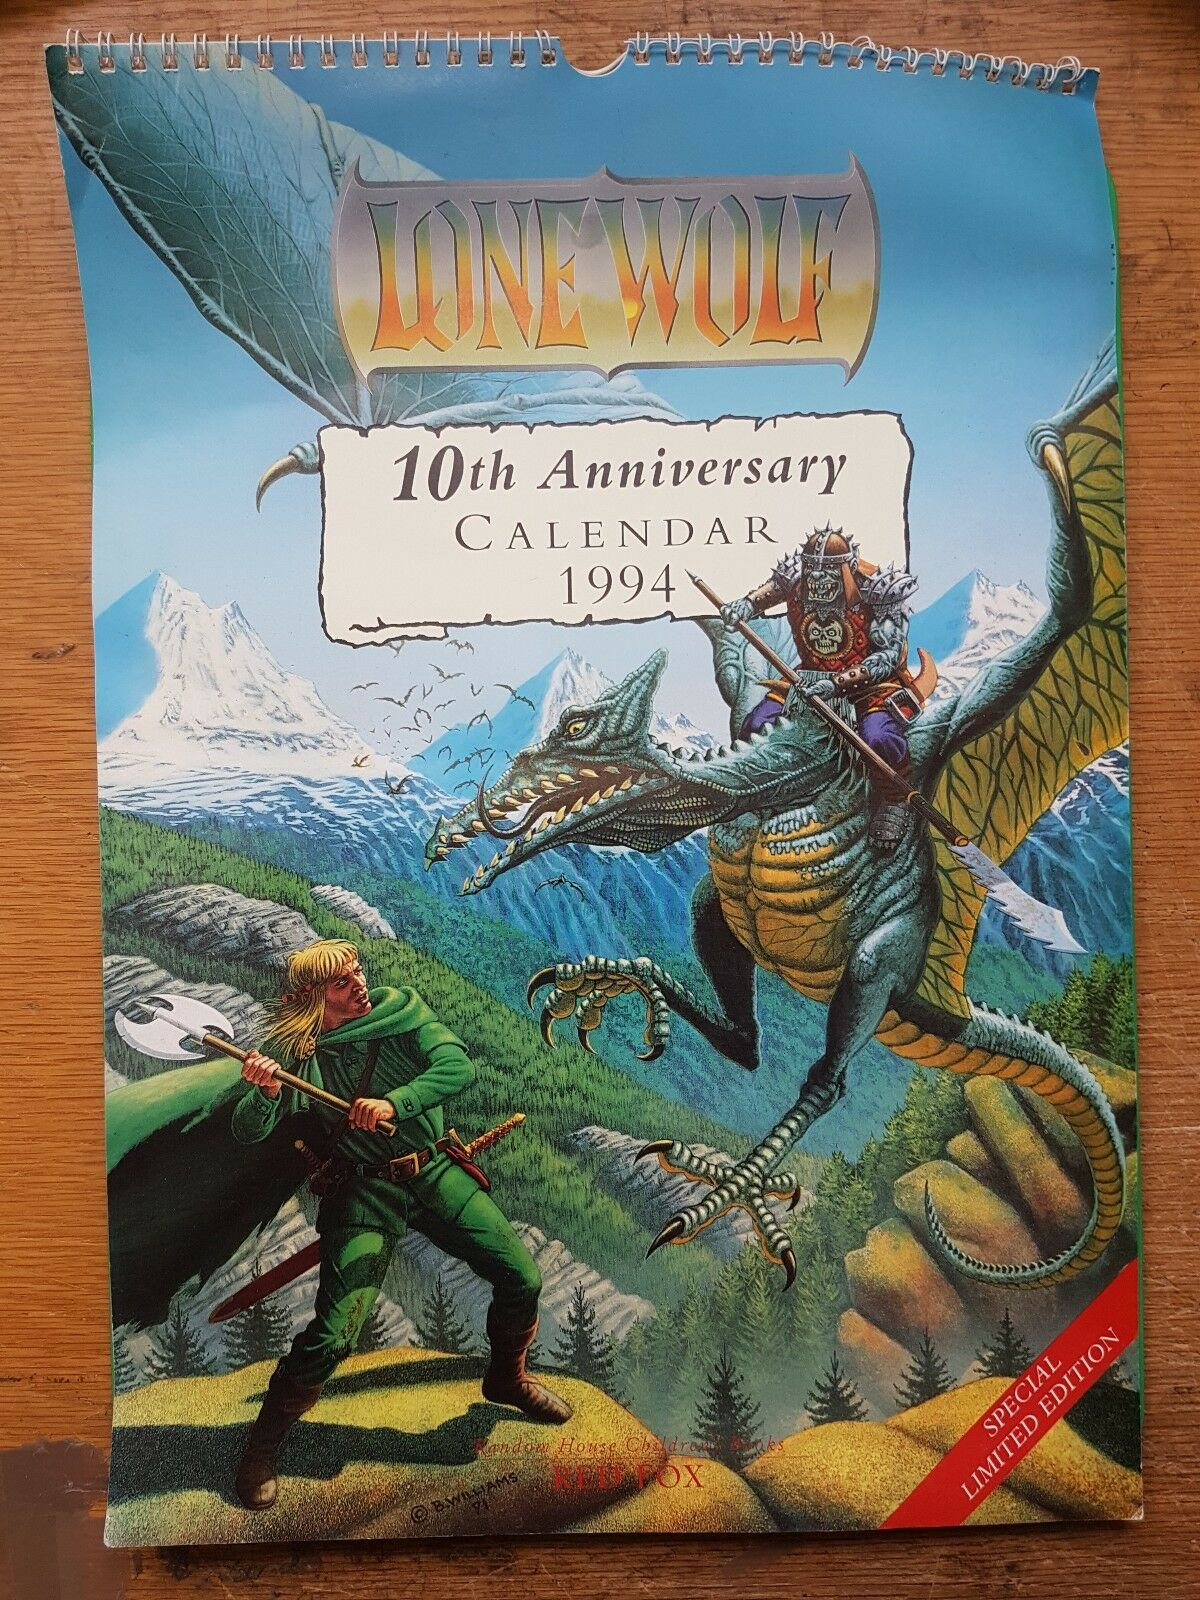 Édition Limitée Lone Wolf 10th Anniversary Calendrier Avent 1994 - Joe